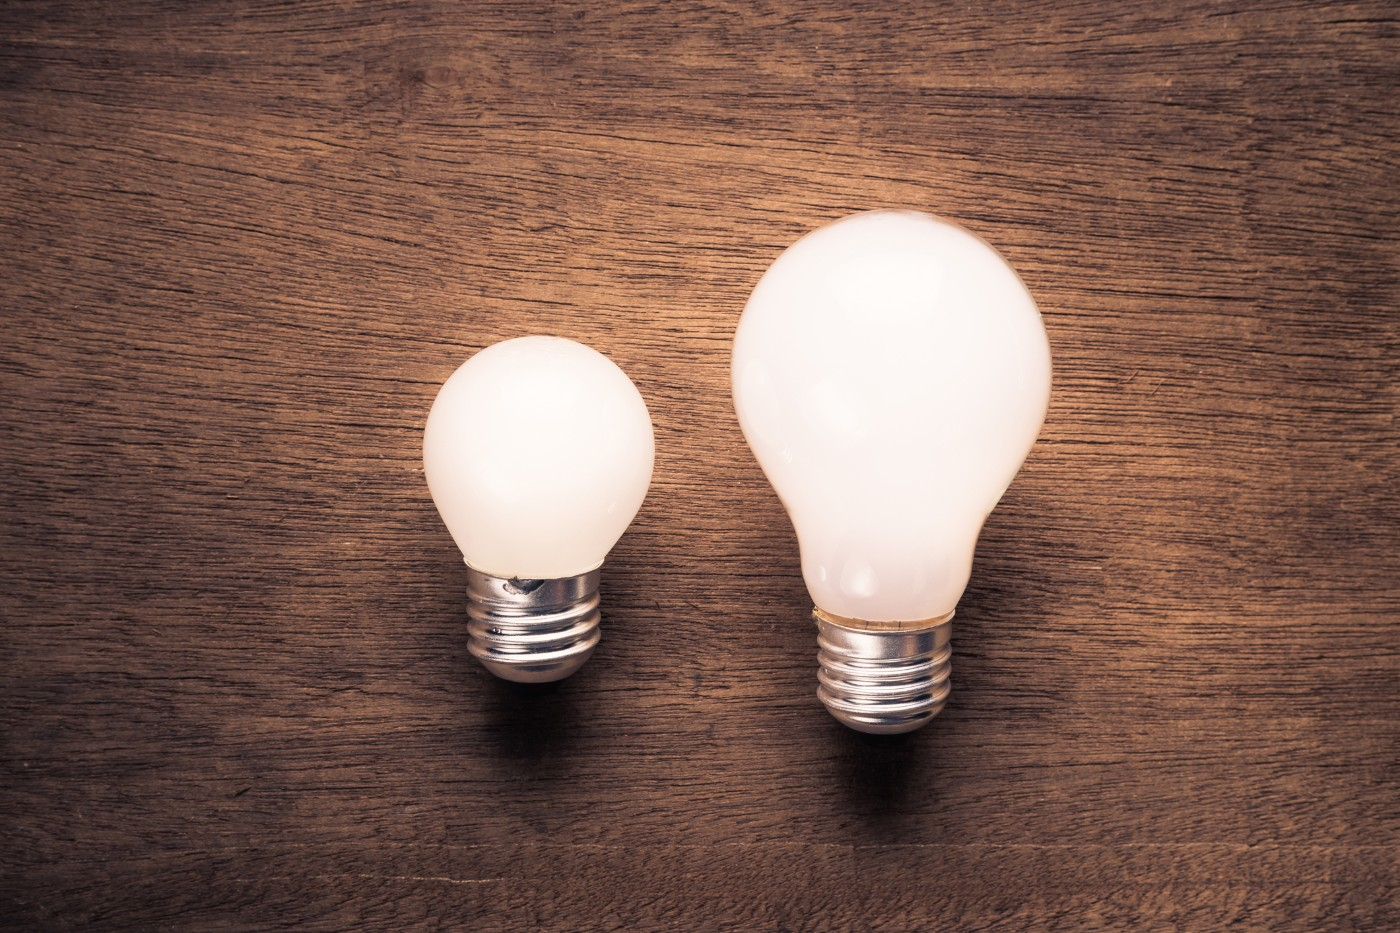 https://tickertapecdn.tdameritrade.com/assets/images/pages/md/Small and large lightbulb: Small-cap stocks for portfolio diversification